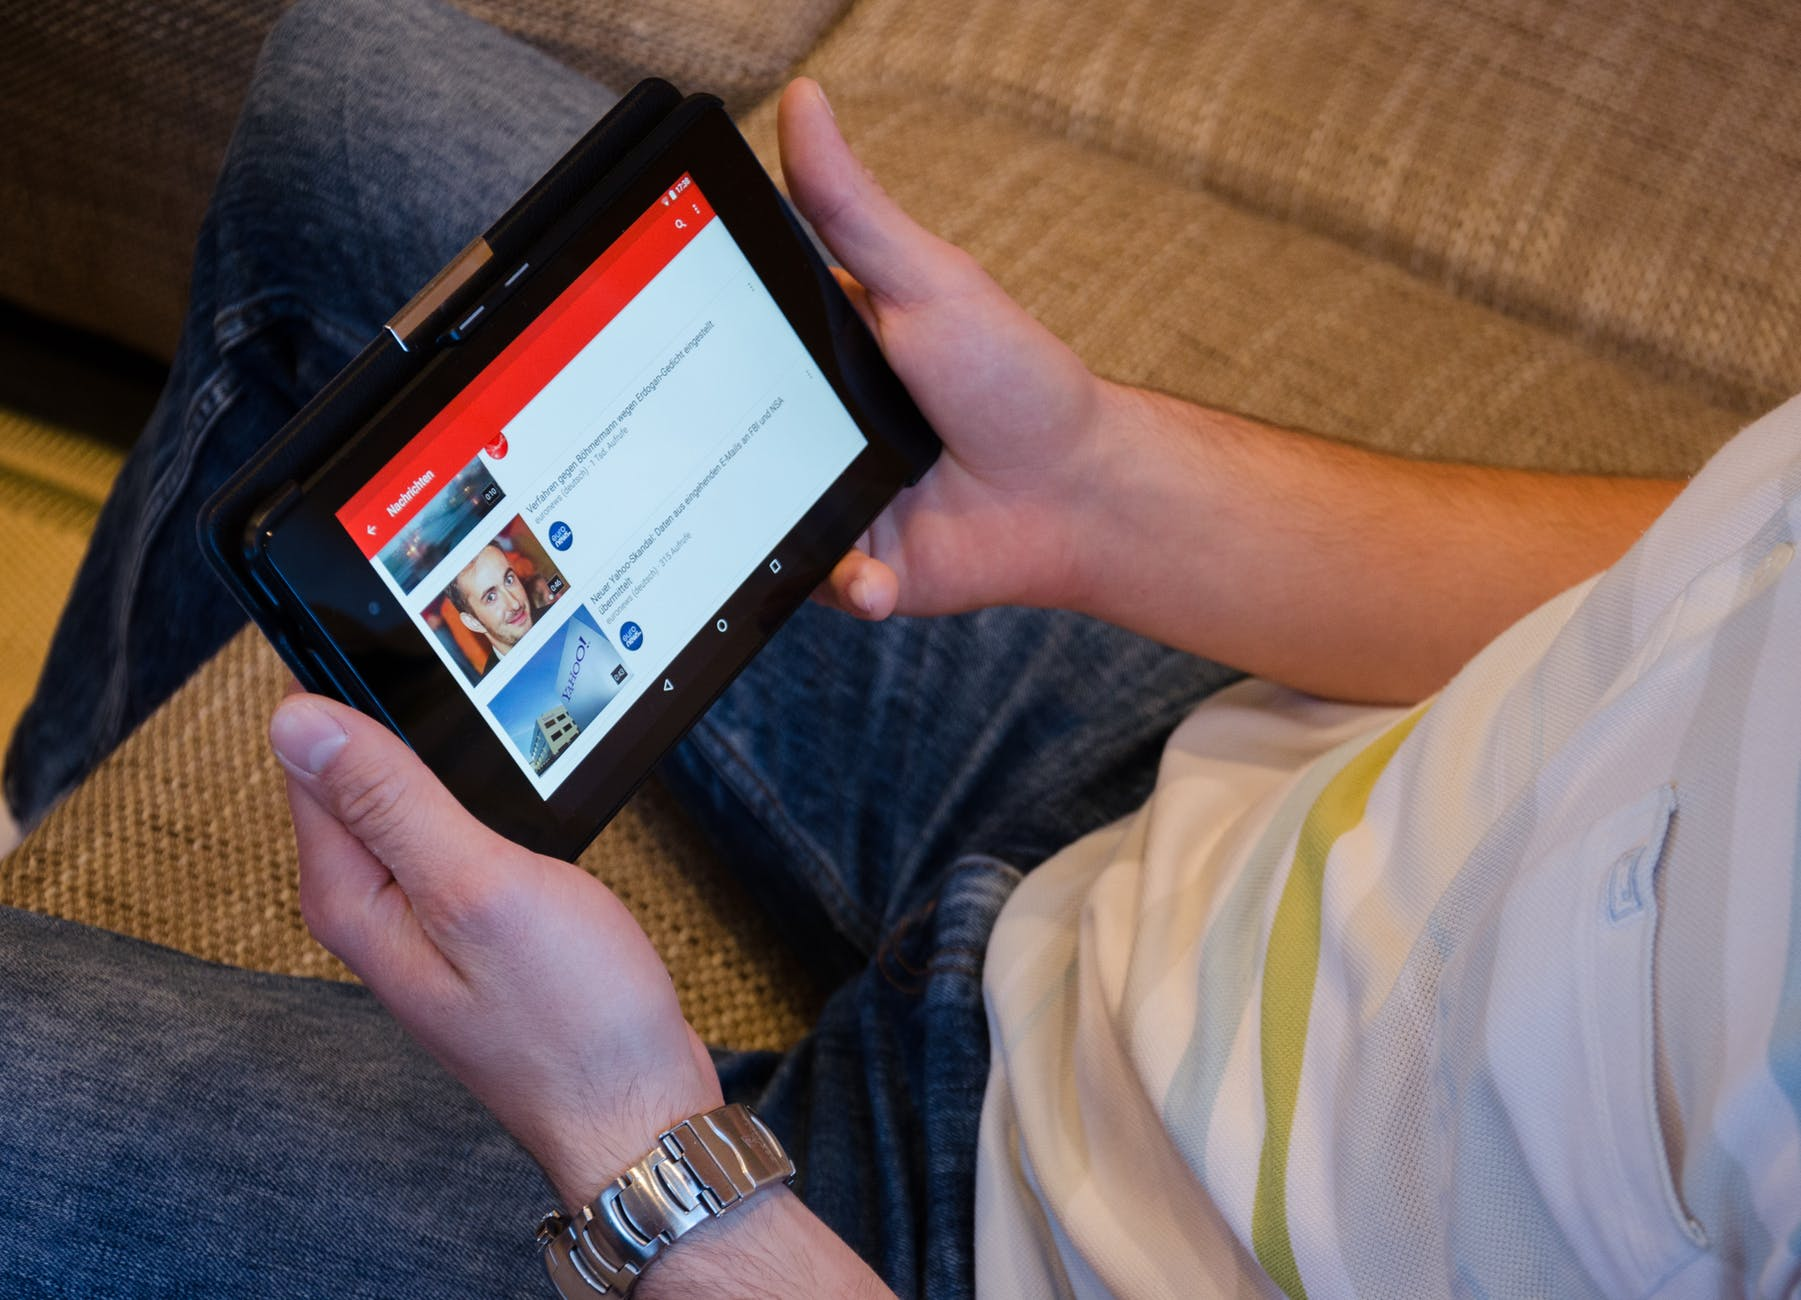 showing youtube site on a tablet